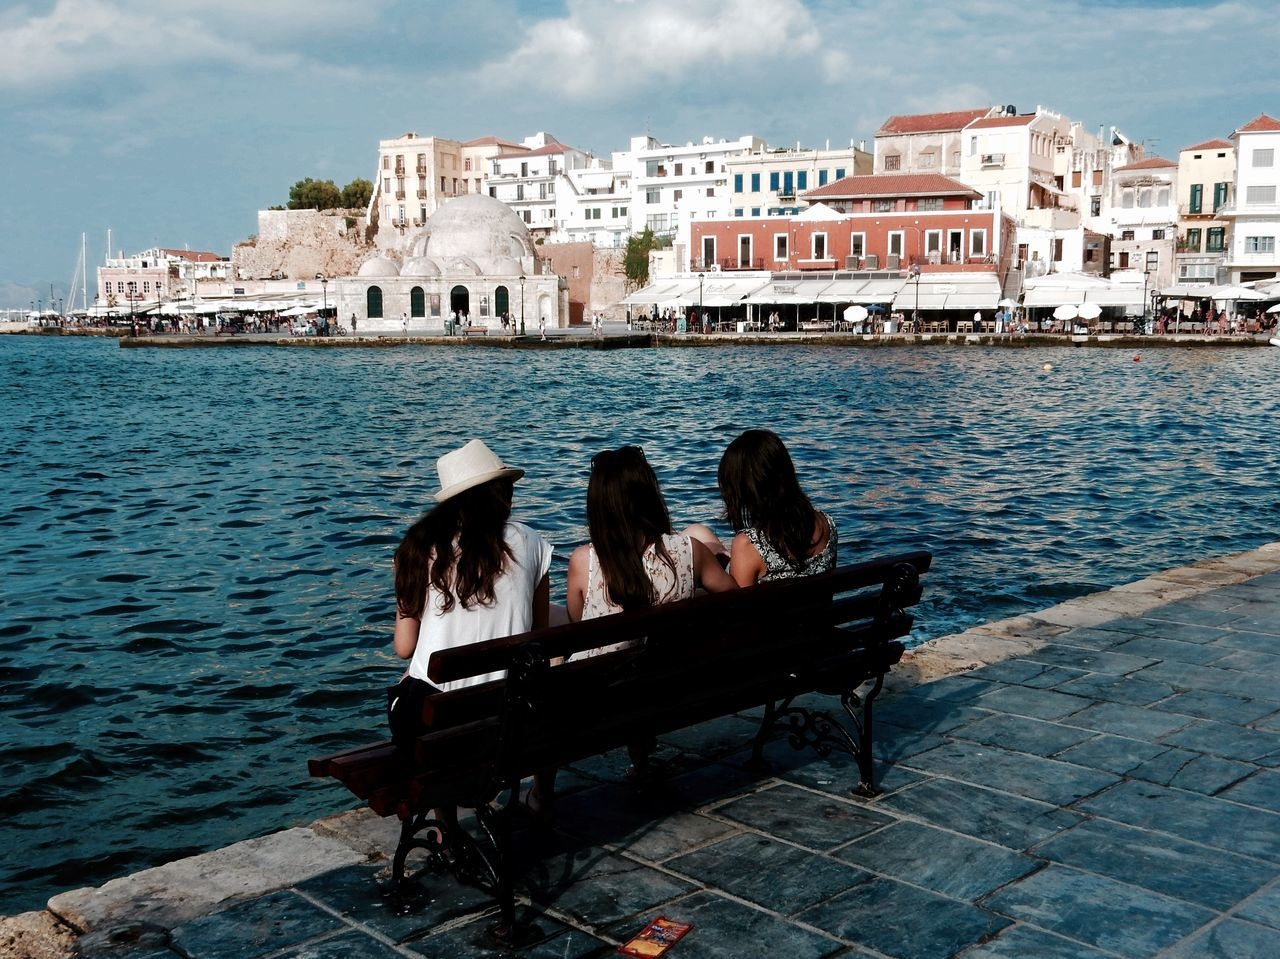 building exterior, architecture, built structure, togetherness, leisure activity, water, sitting, day, real people, two people, outdoors, women, sea, sky, men, bonding, city, young adult, adult, people, adults only